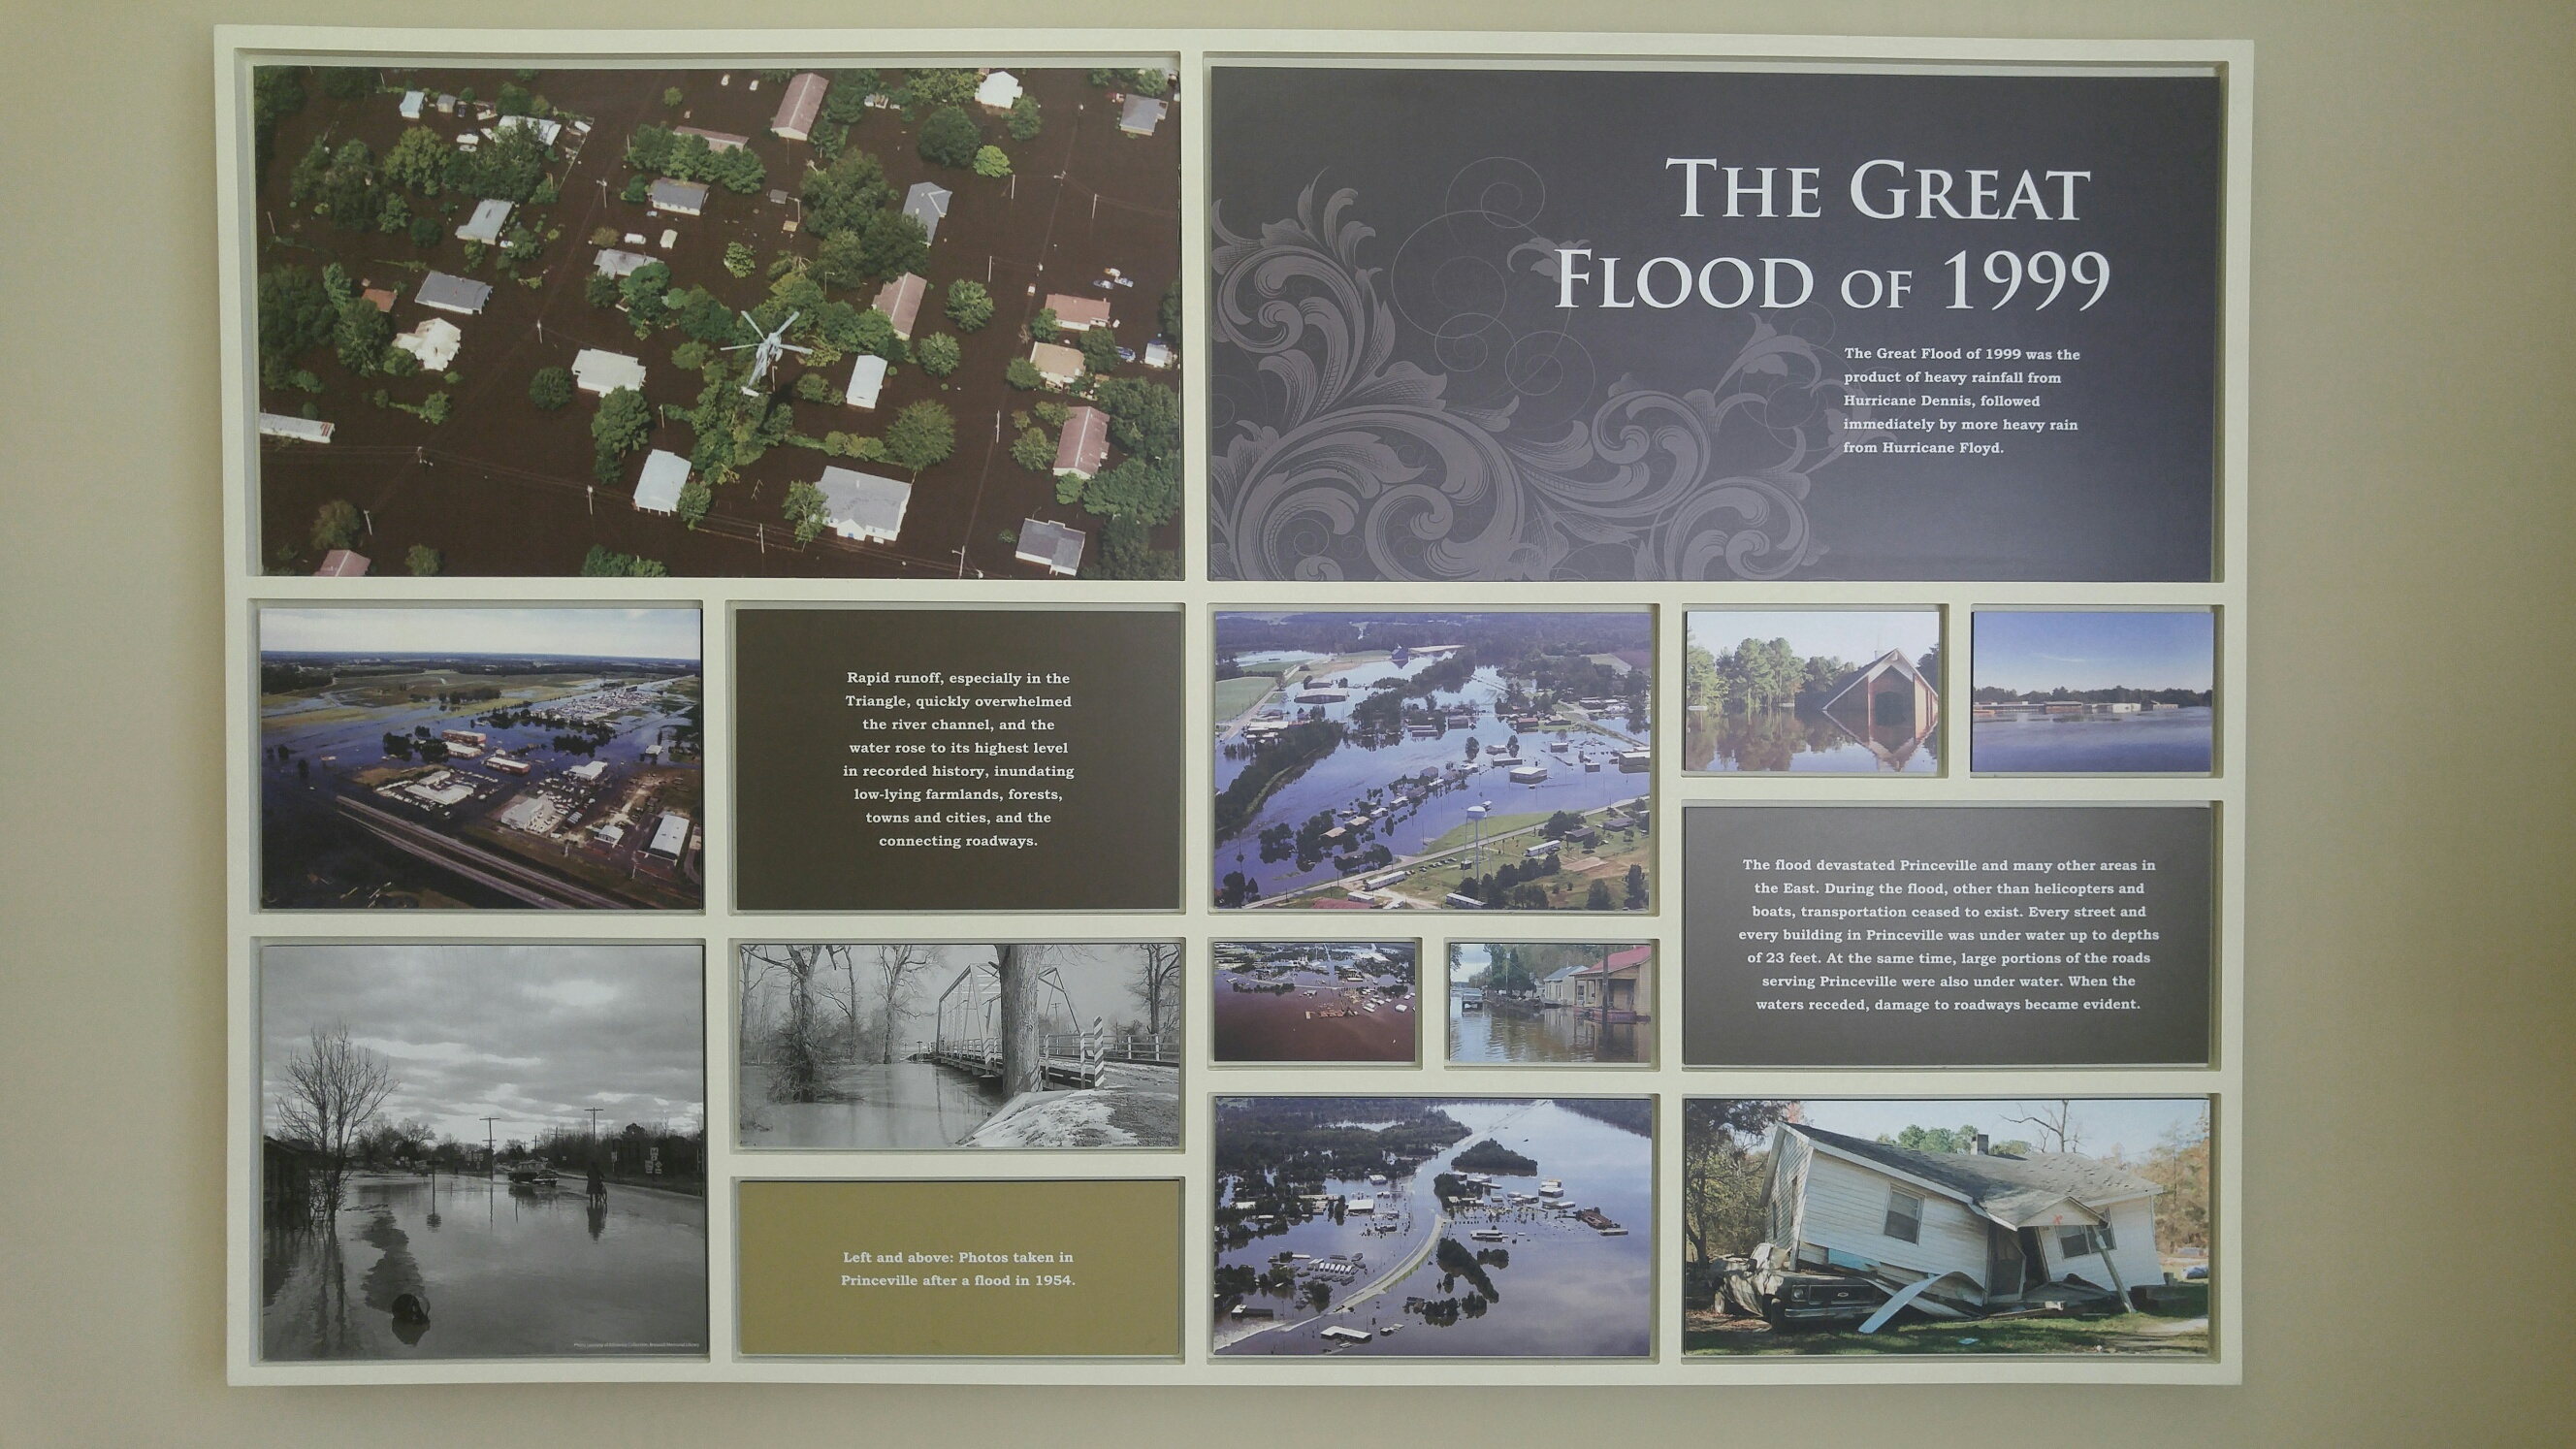 The Great Flood of 1999 was the product of heavy rainfall from Hurricane Dennis, followed immediately by more heavy rain from Hurricane Floyd. (photo by: Kayla Greene)